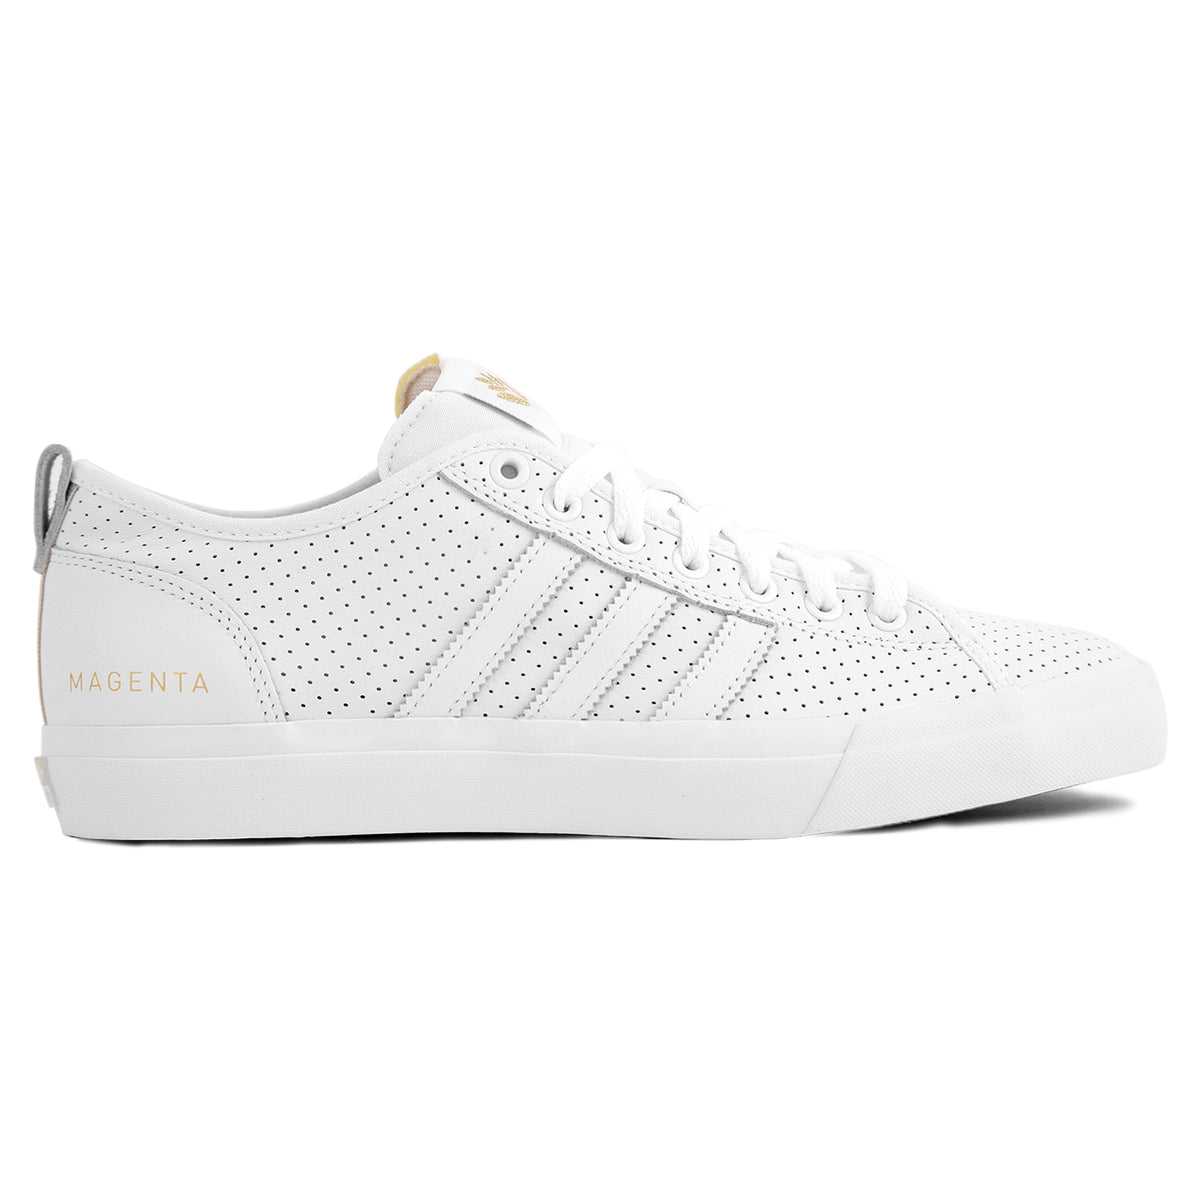 cheap for discount 63a62 7de03 Adidas x Magenta Skateboards Matchcourt RX Skate Shoes in White   Gold  Metallic   Gum by Adidas Skateboarding   Bored of Southsea